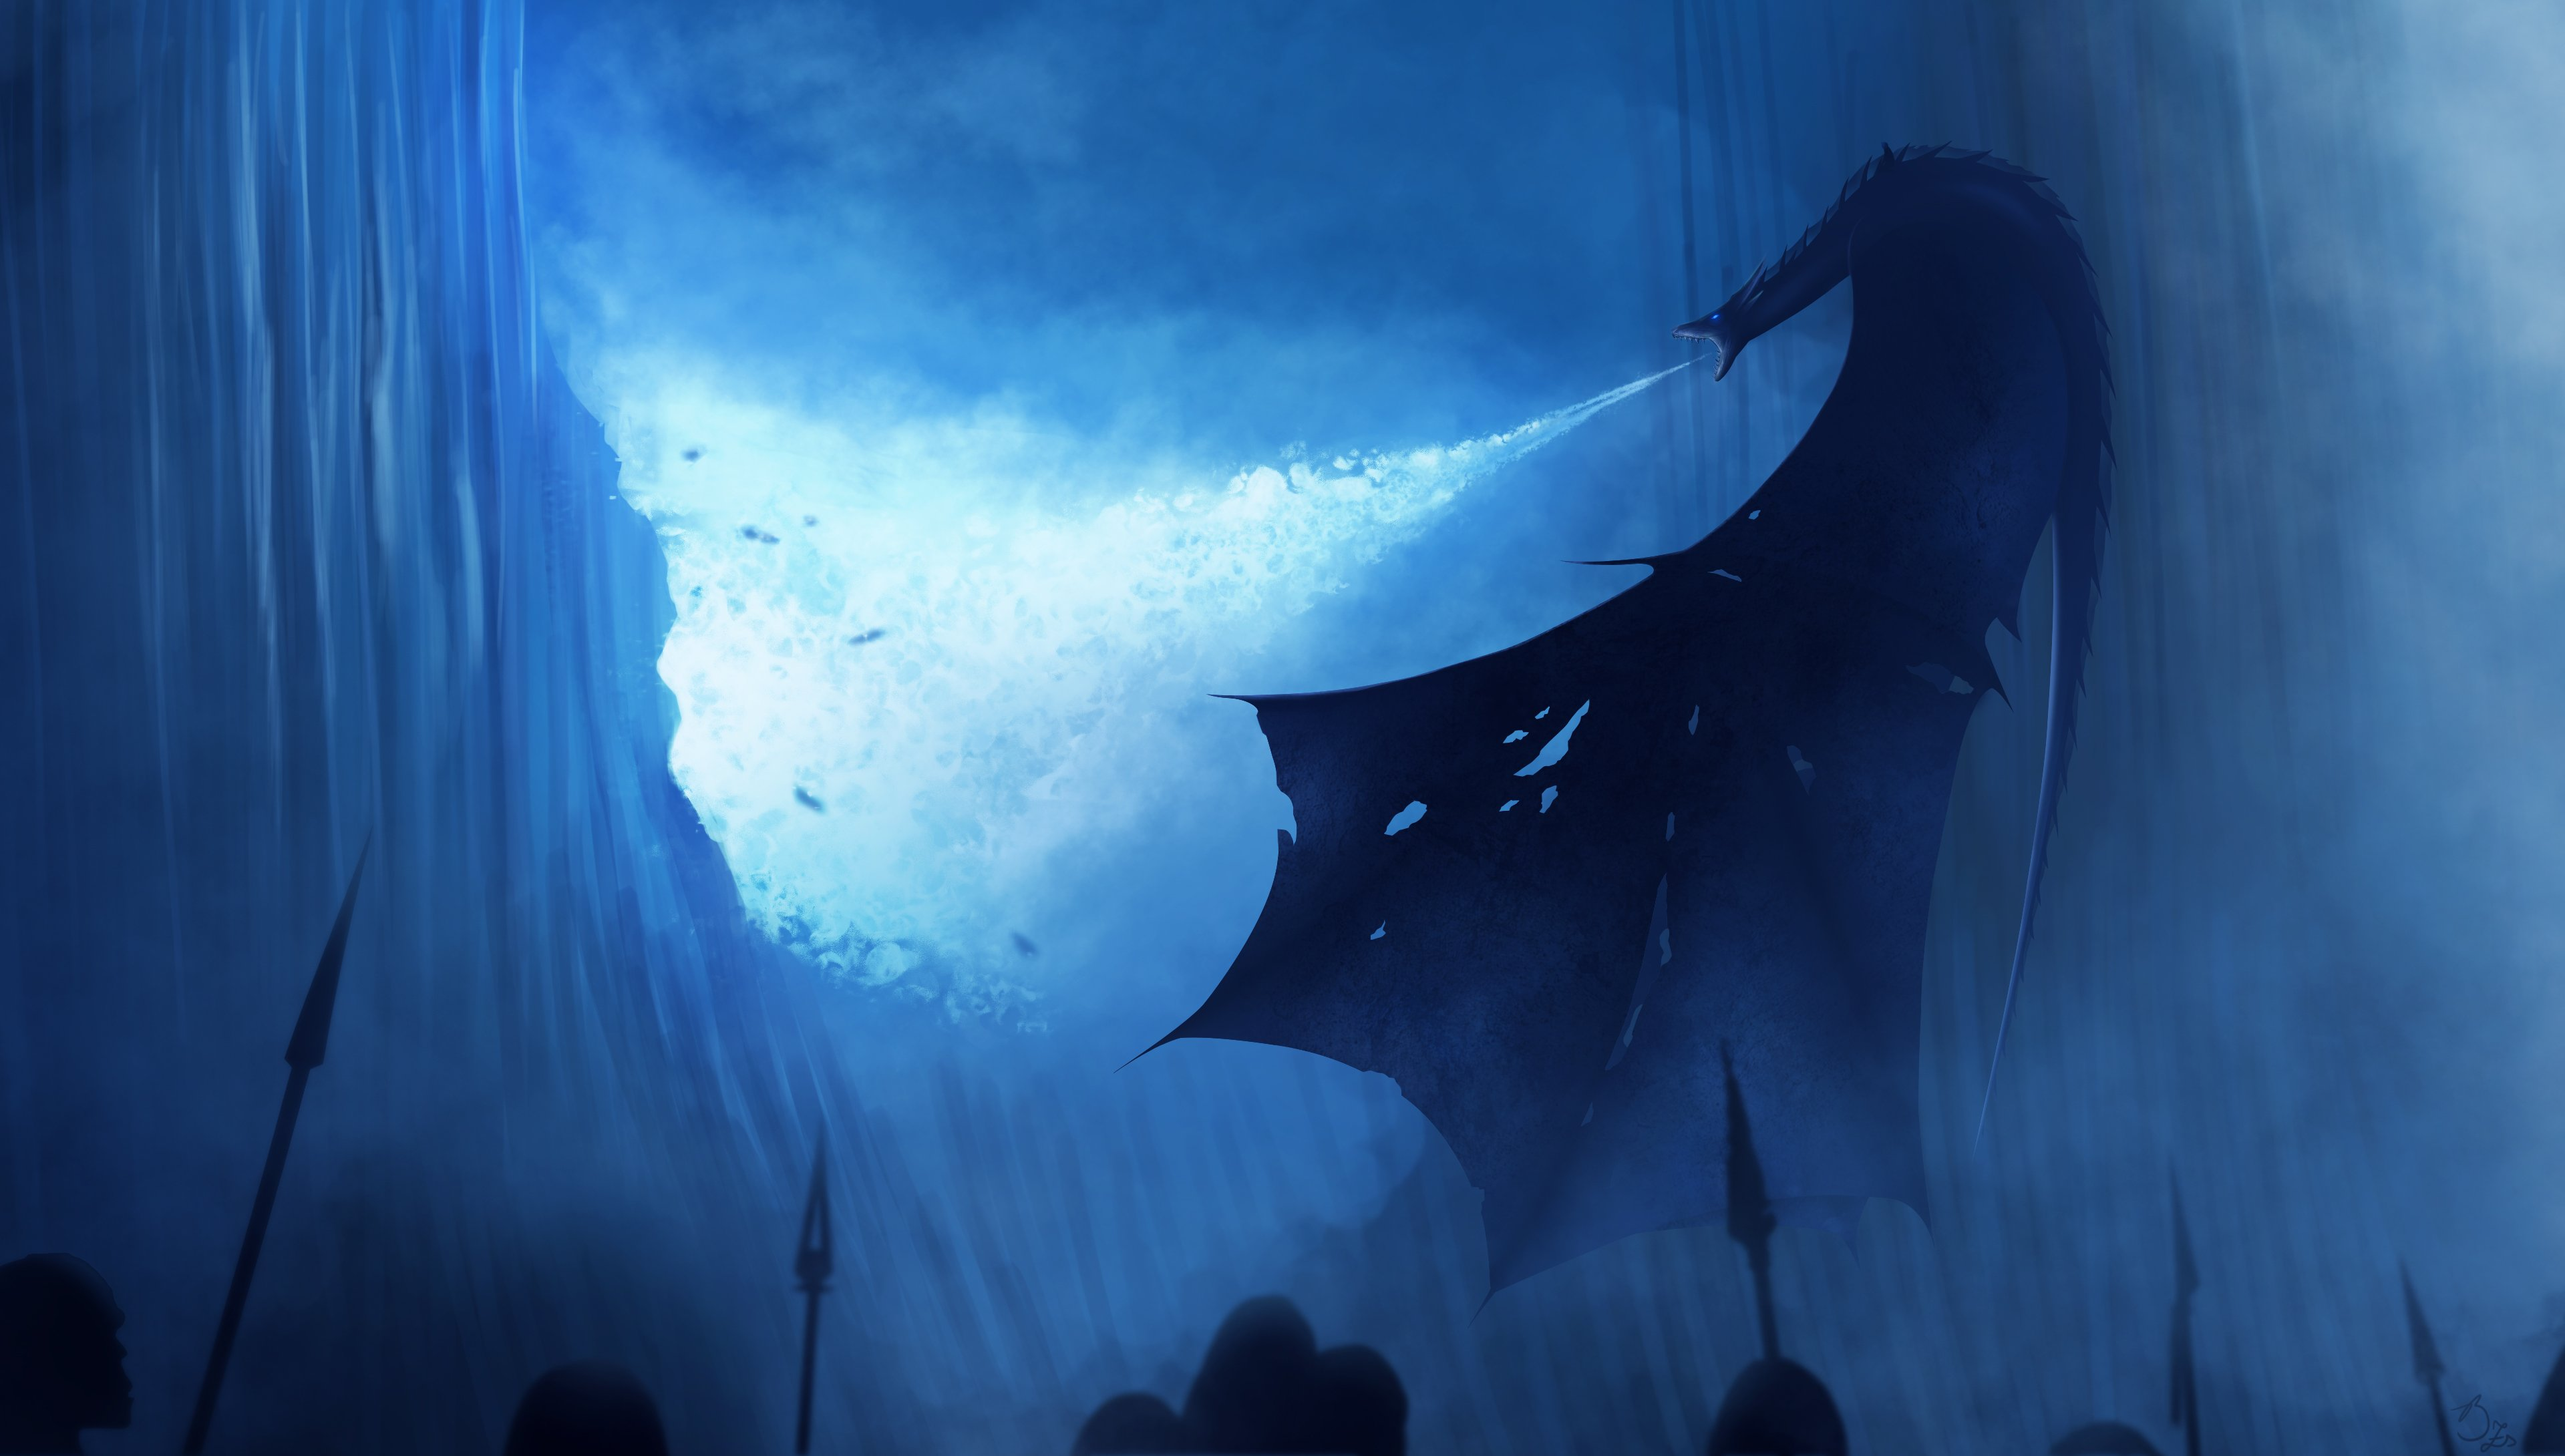 31 Game Of Thrones 4k Wallpapers On Wallpapersafari